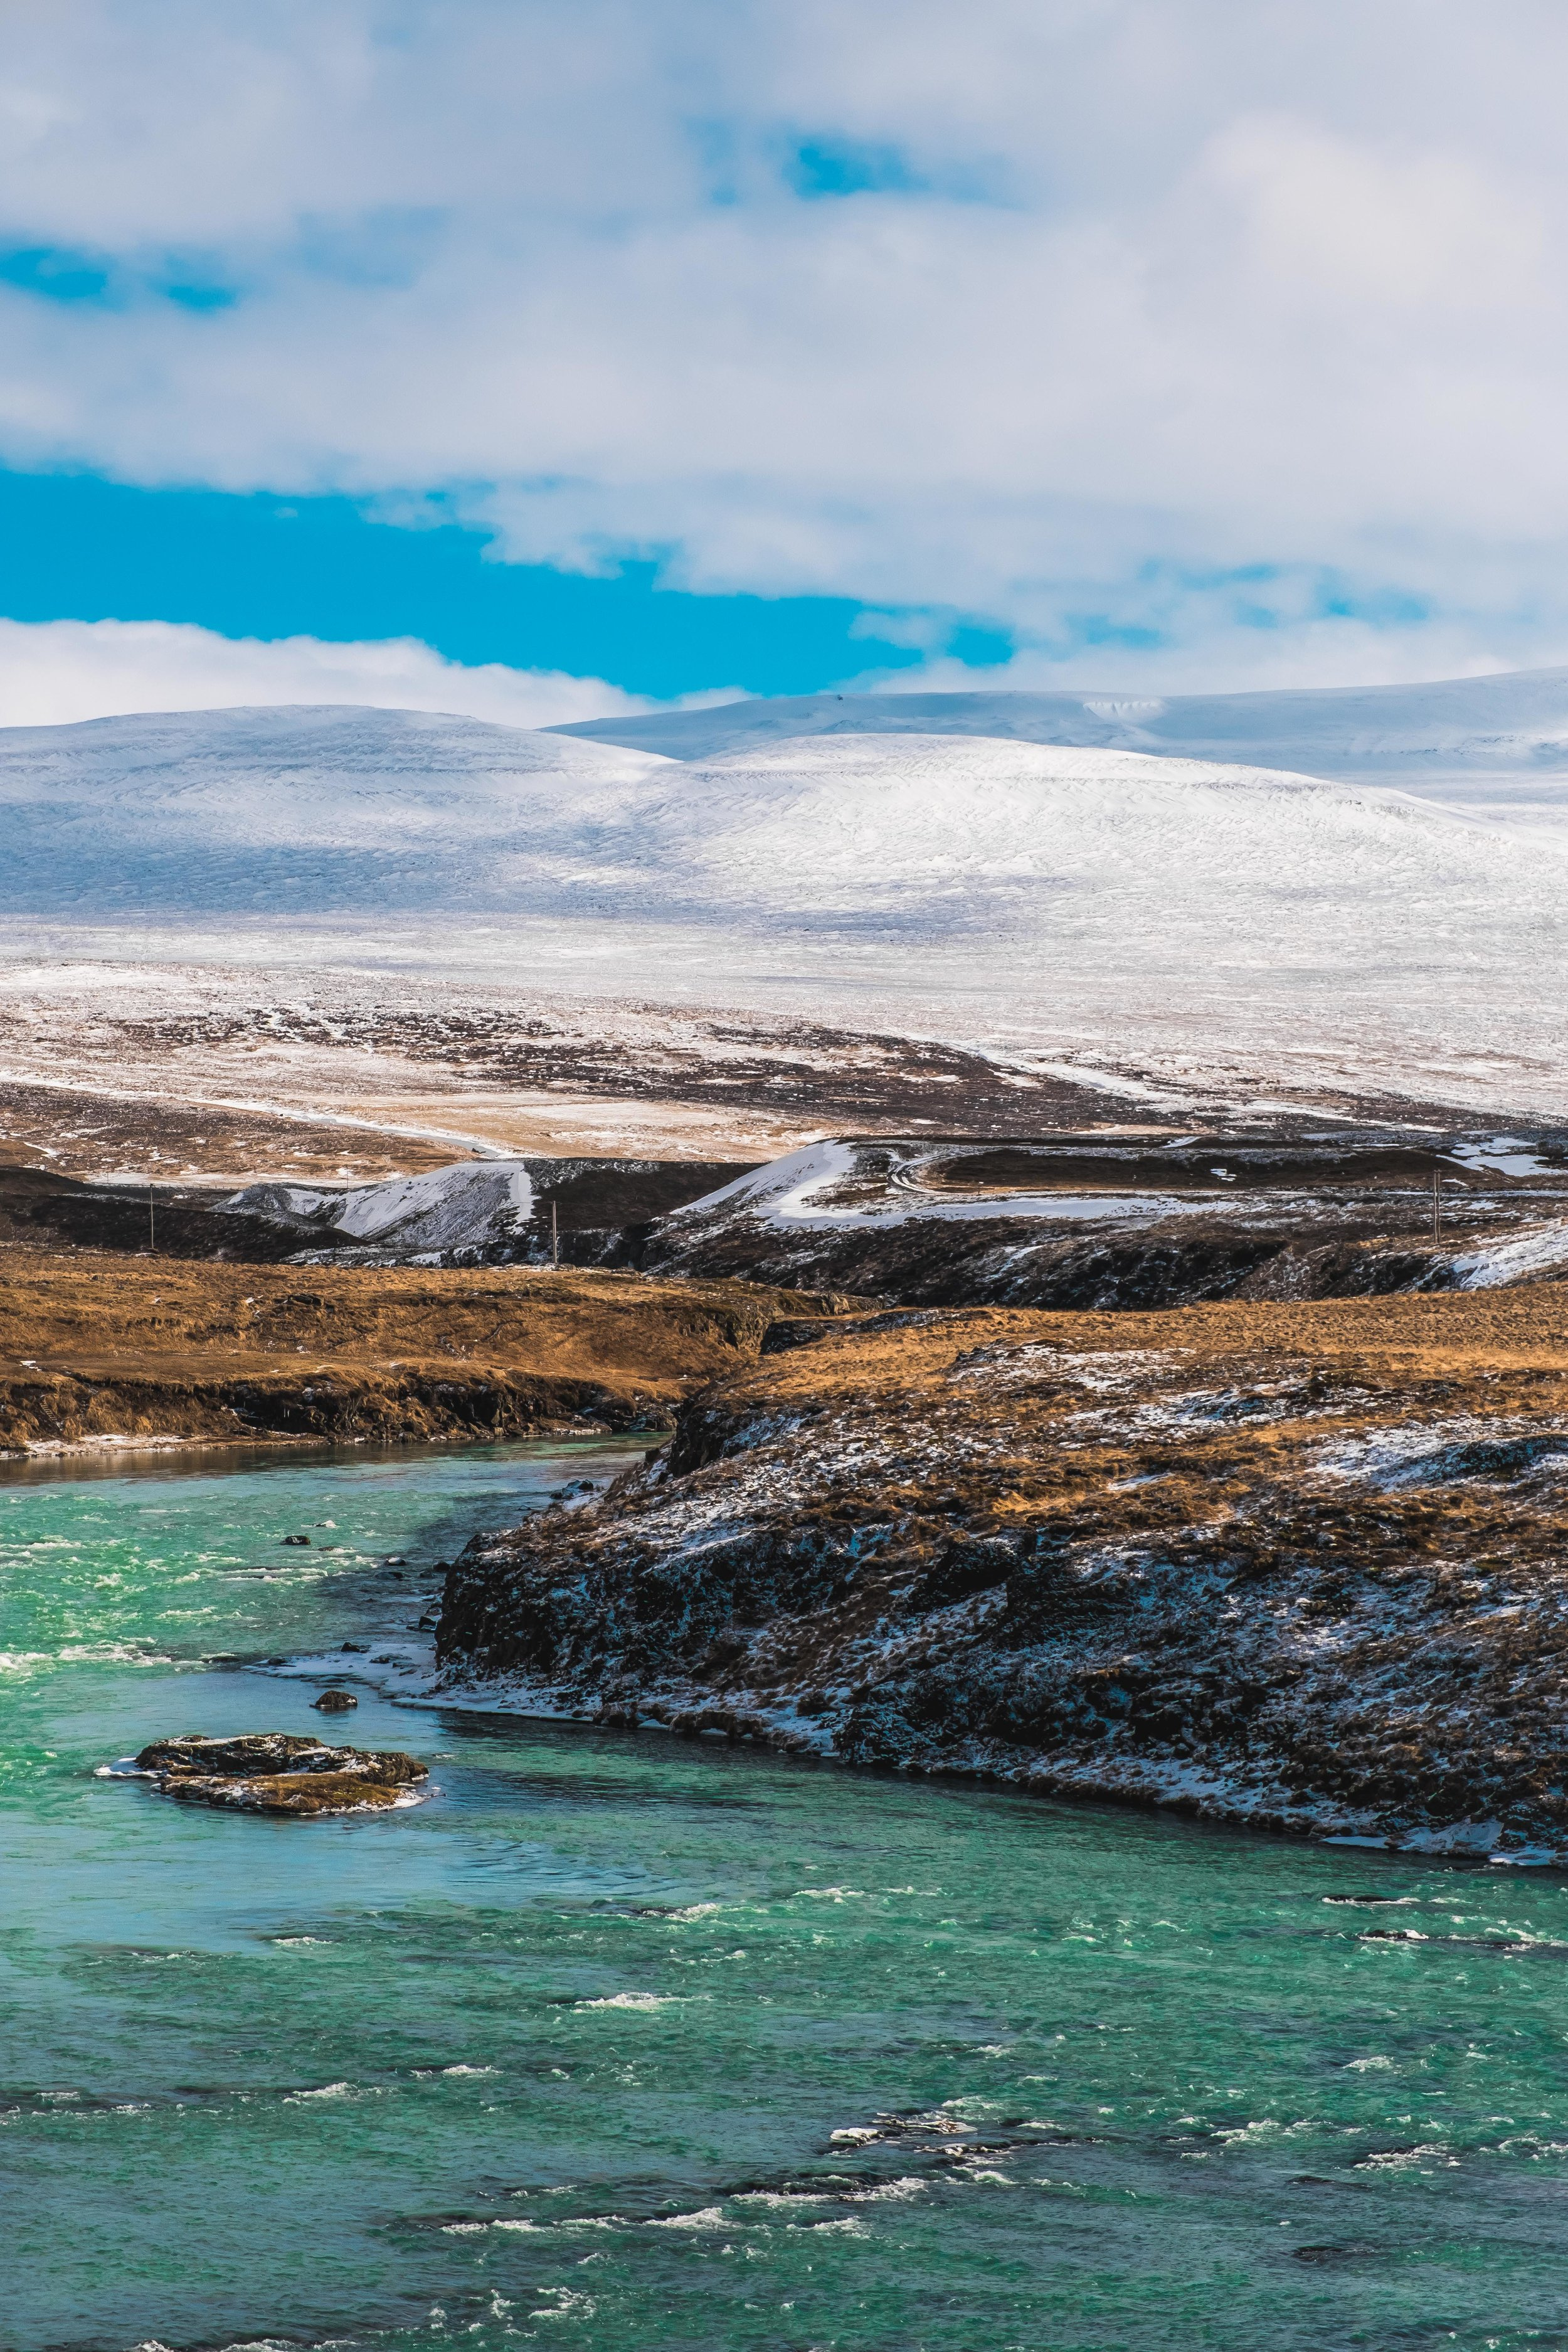 Since we stayed in Akureyri for an extra night hunting Northern Lights,we had a big driving day ahead of us the next day if we were to make it back to Reykjavik on time.As we got further and further west, the weather improved.